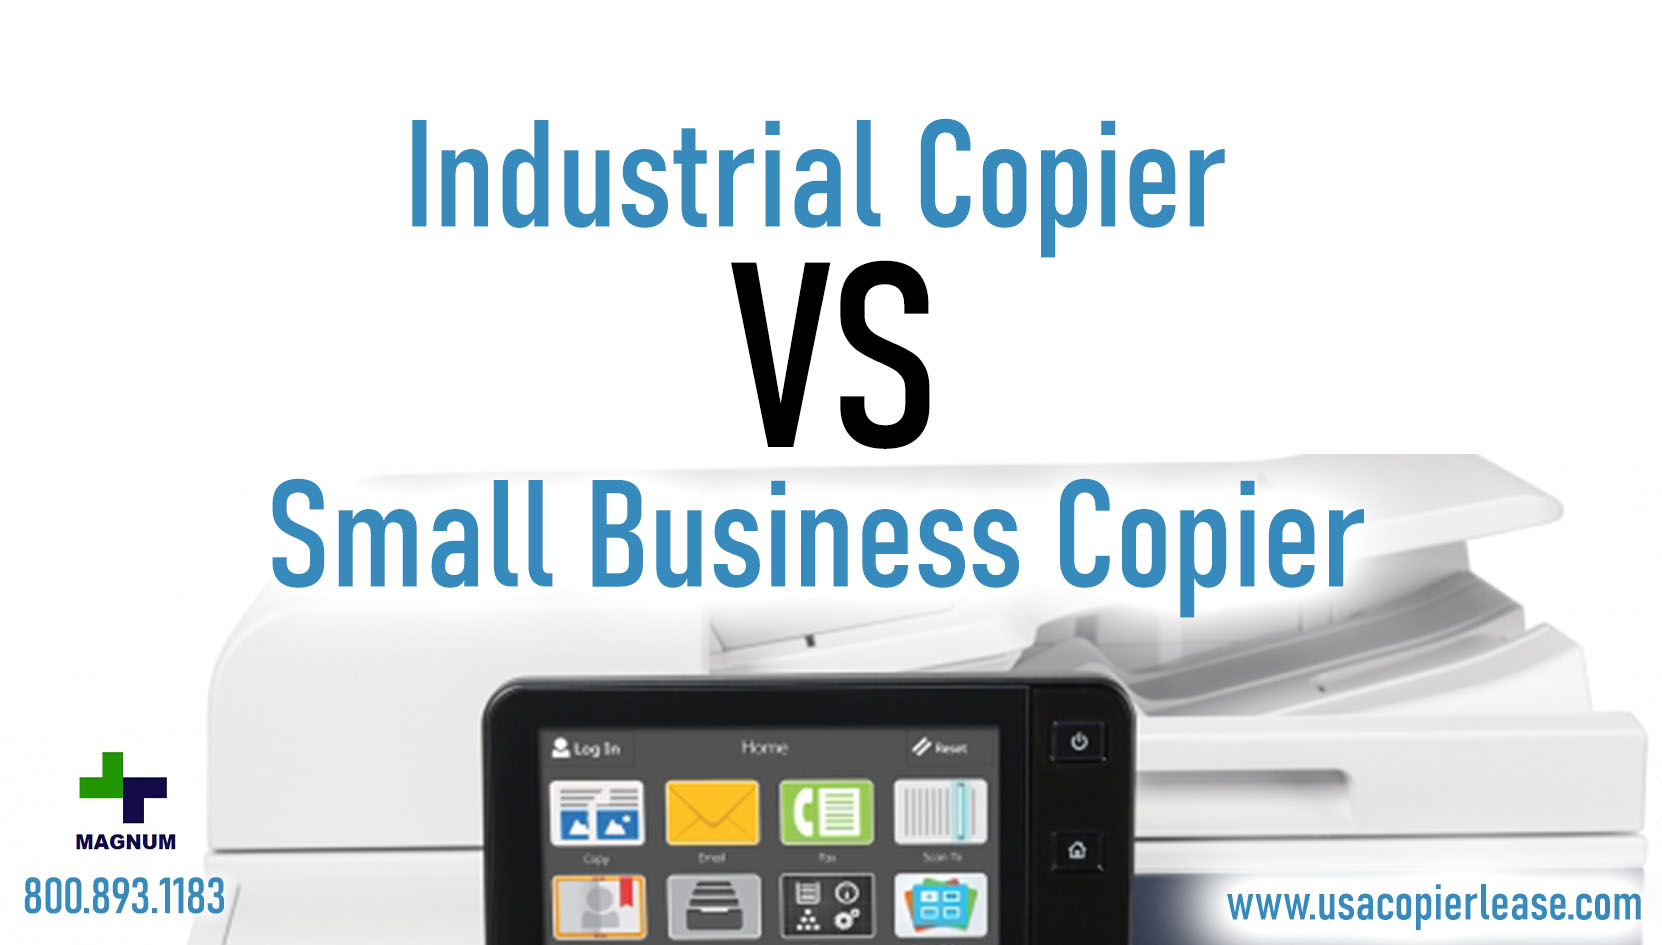 Industrial Copy Machines VS. Small Business Copiers